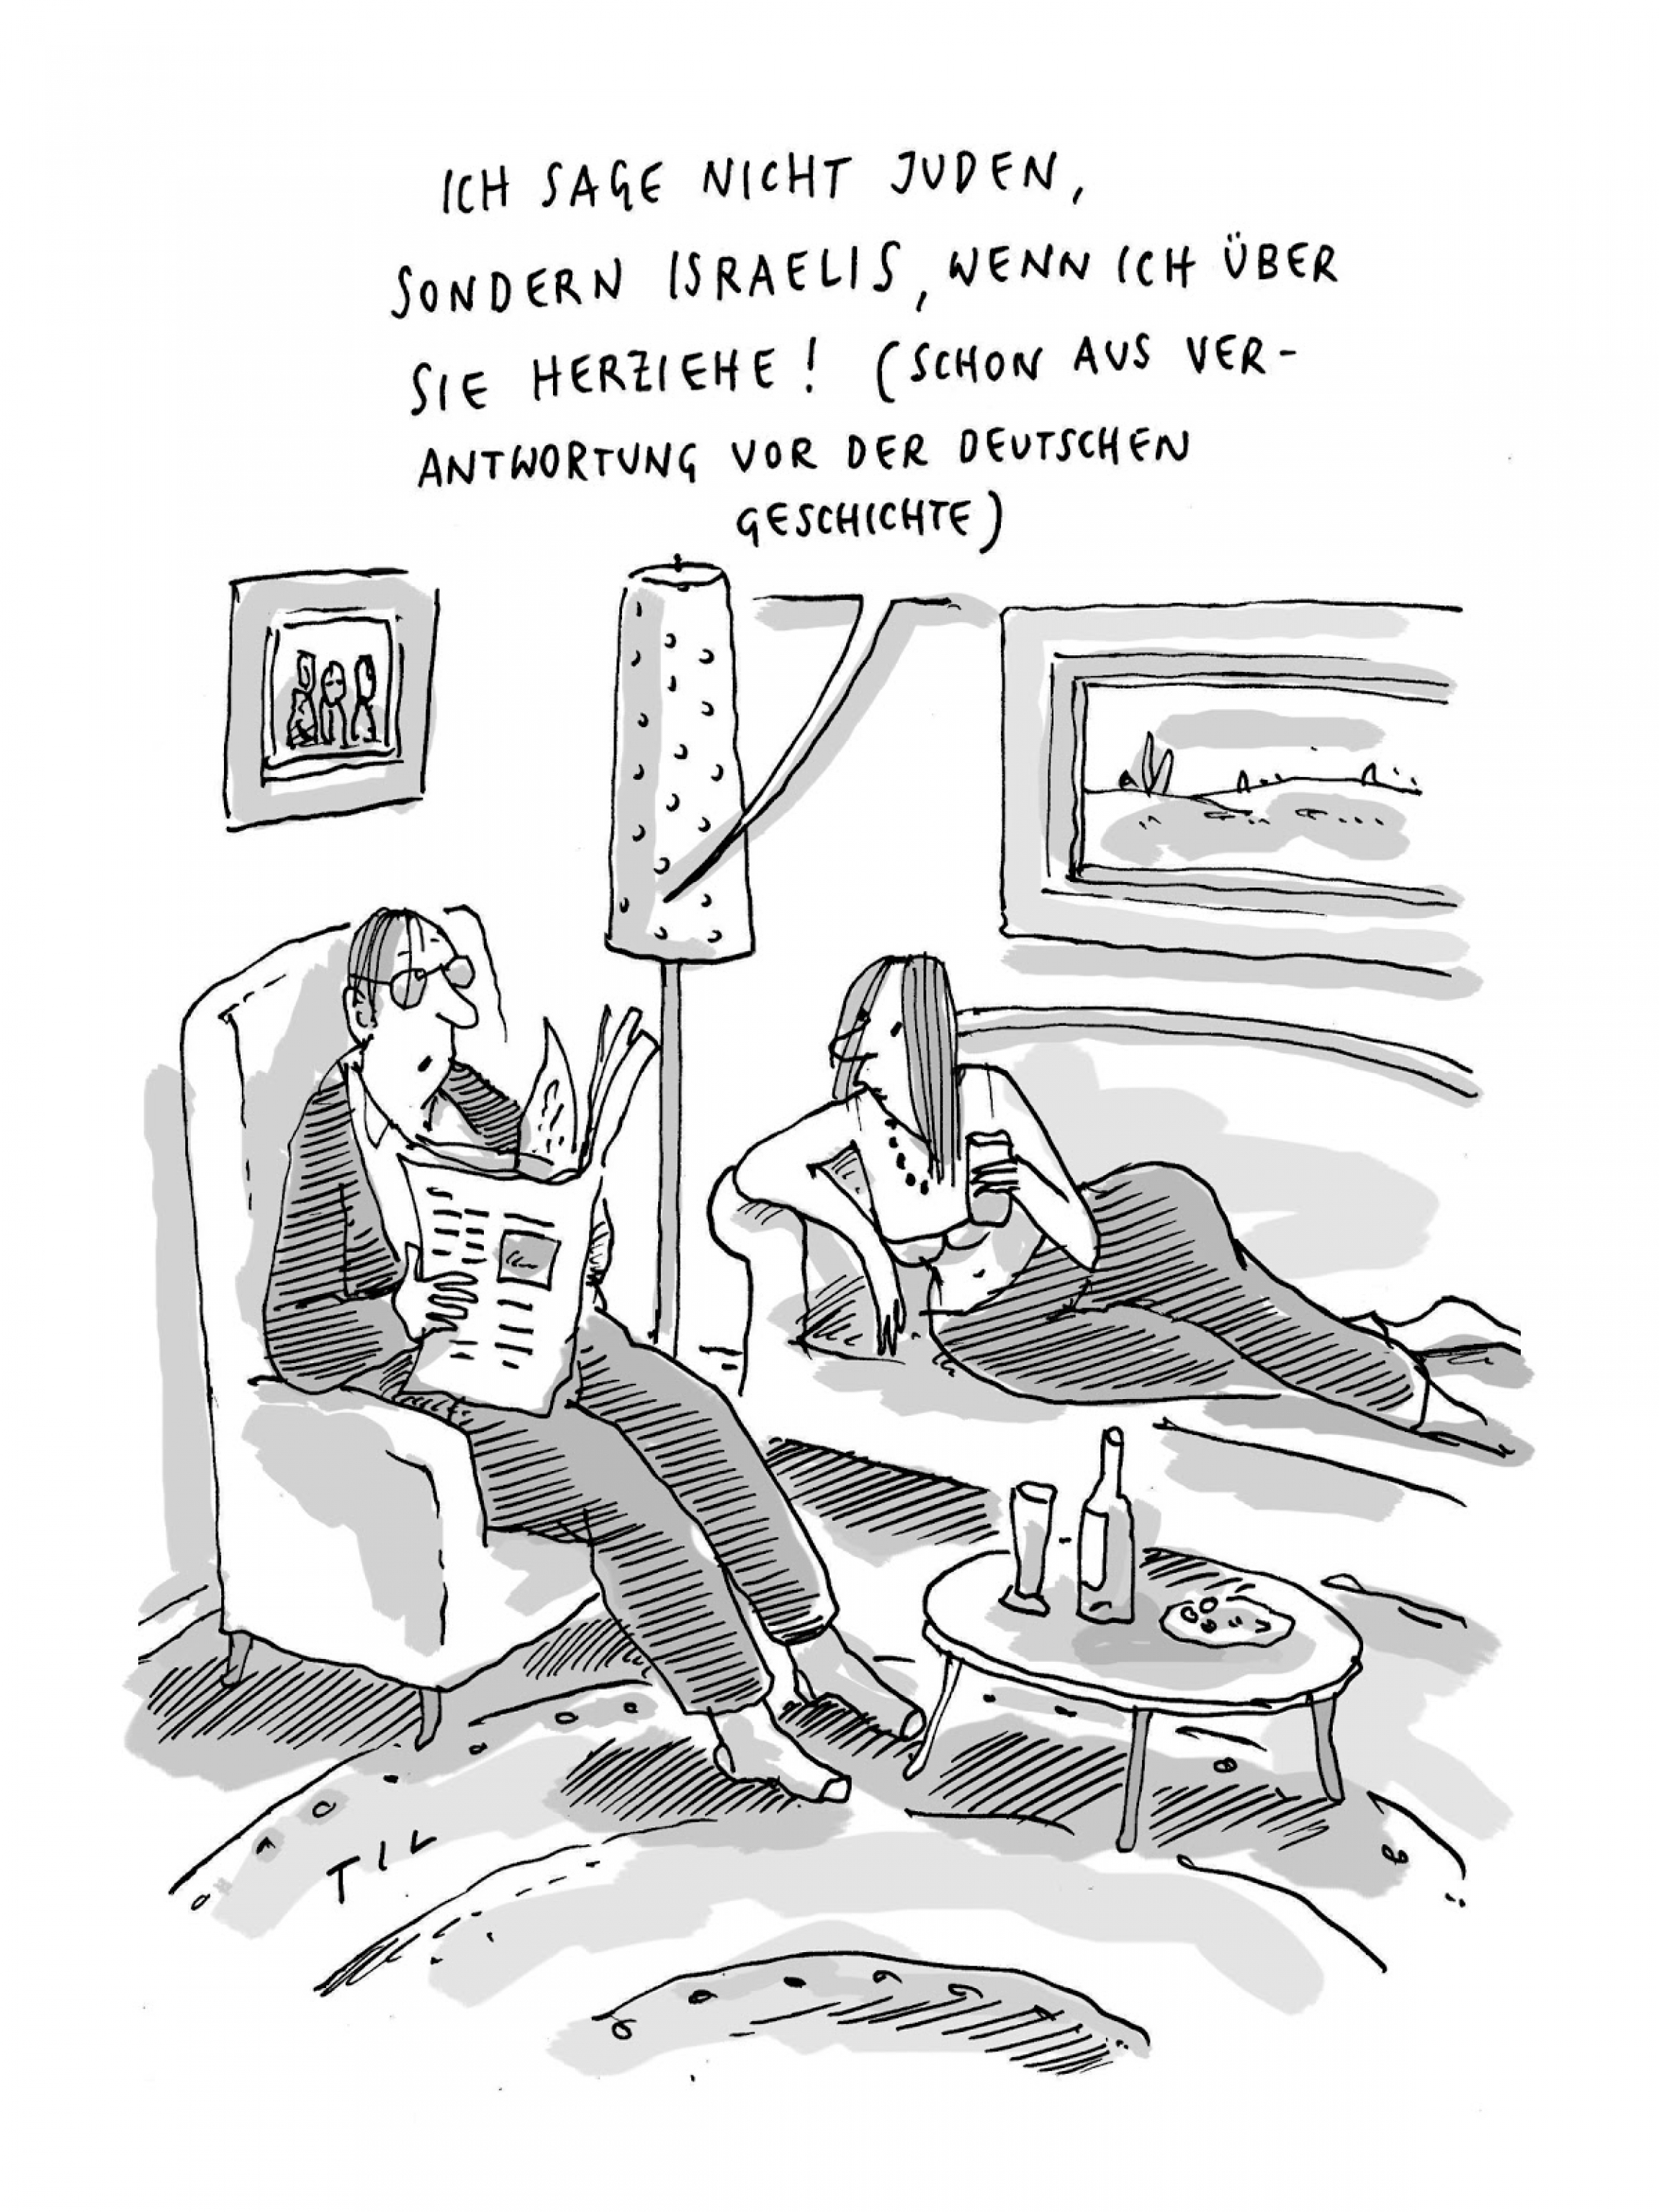 A black and white cartoon of two people talking in a living room.